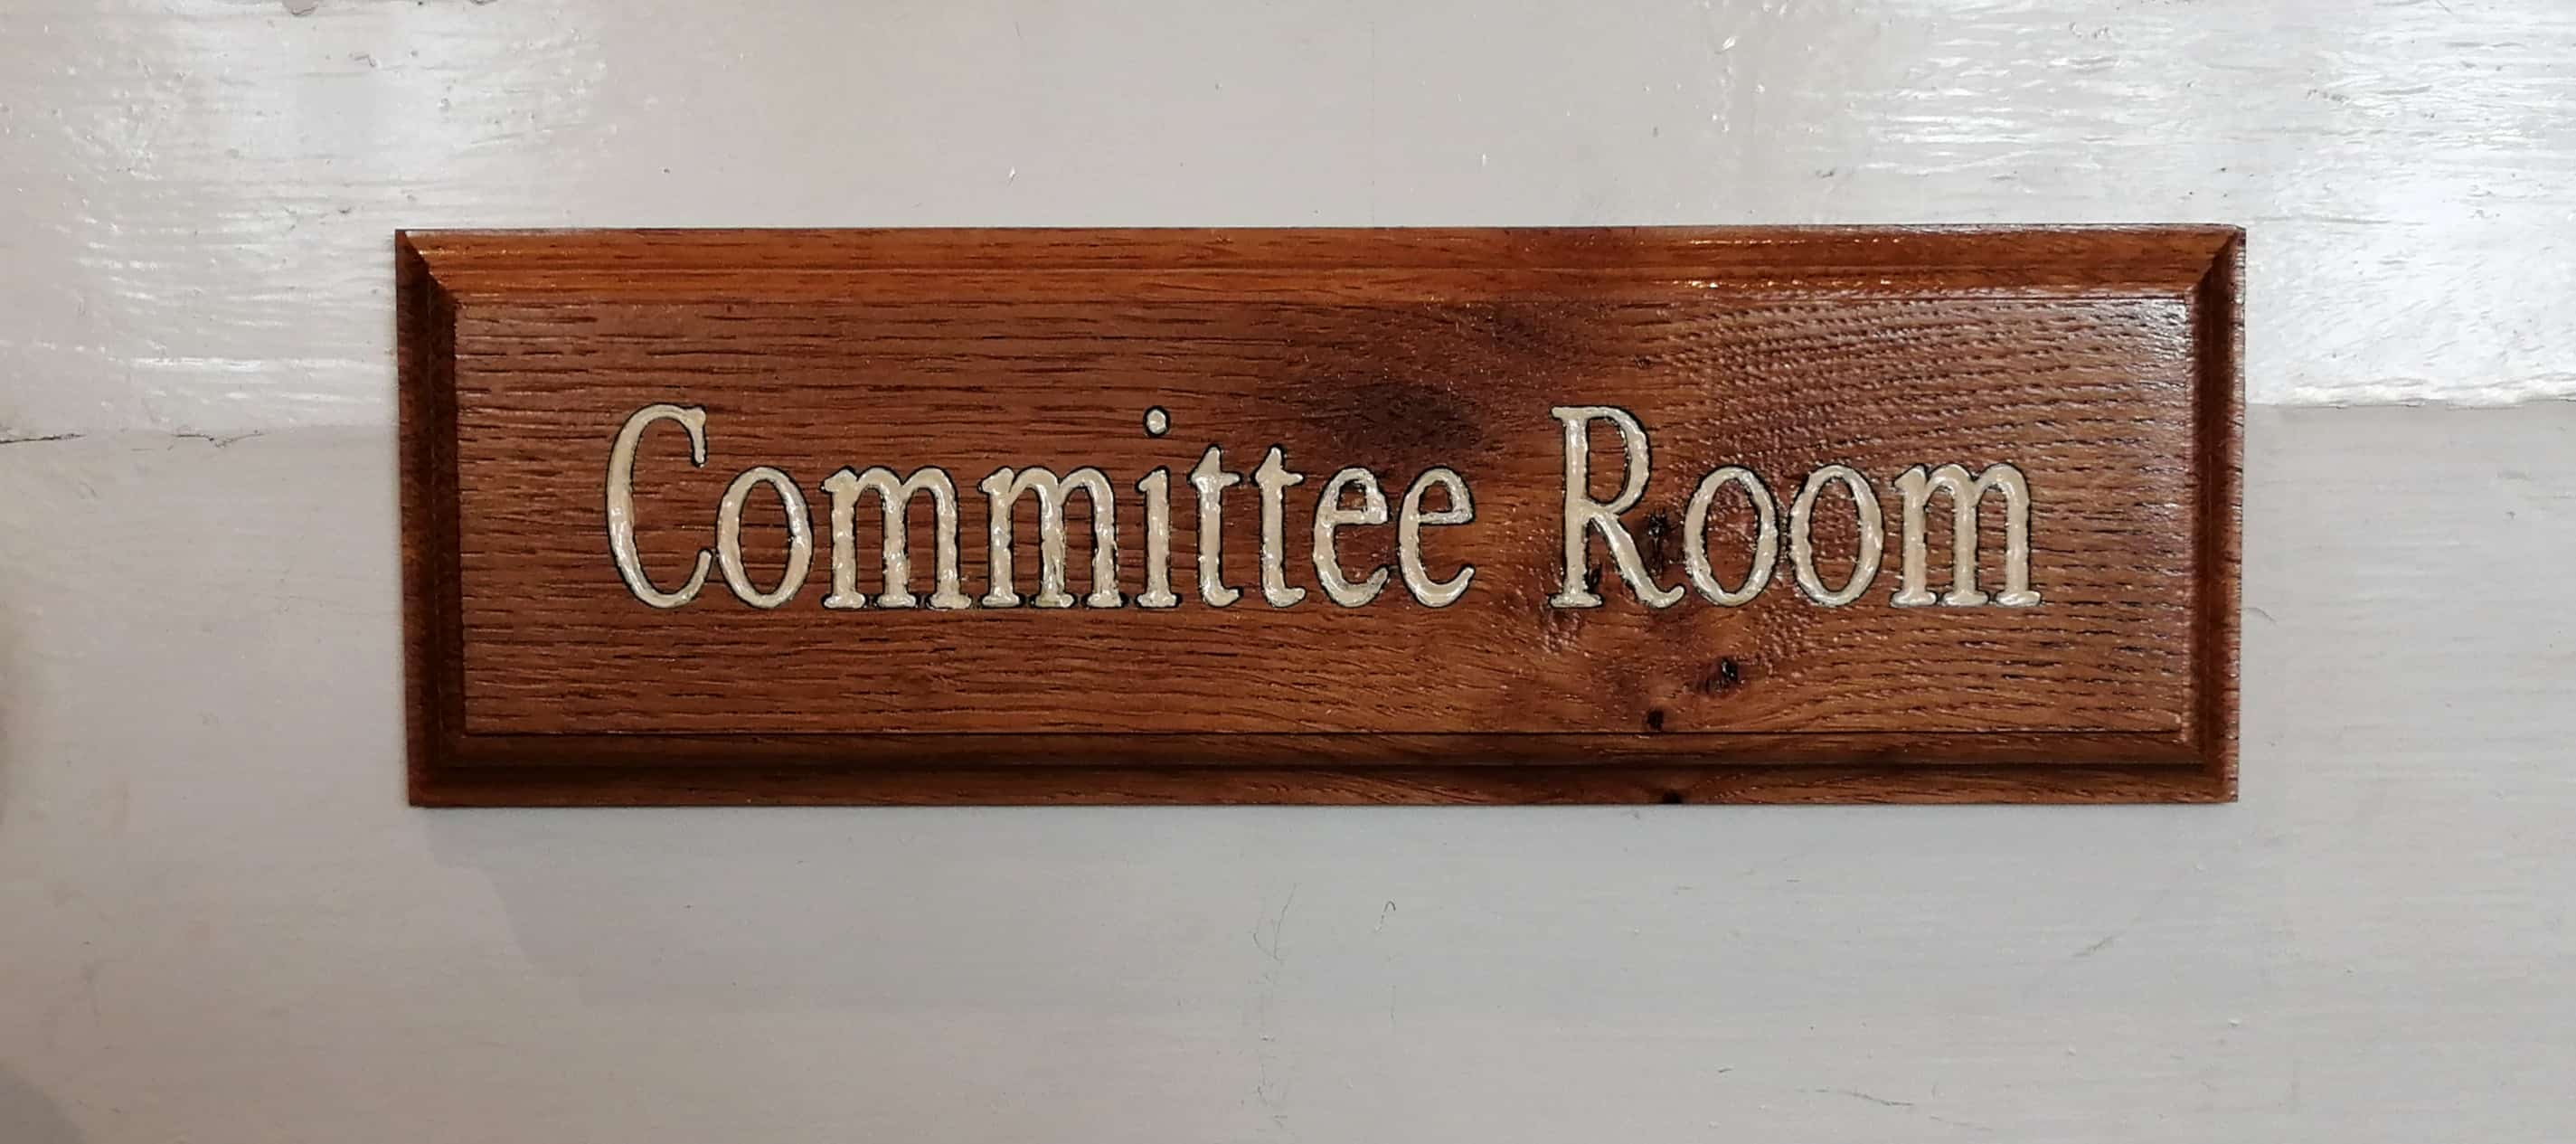 Committee room sign